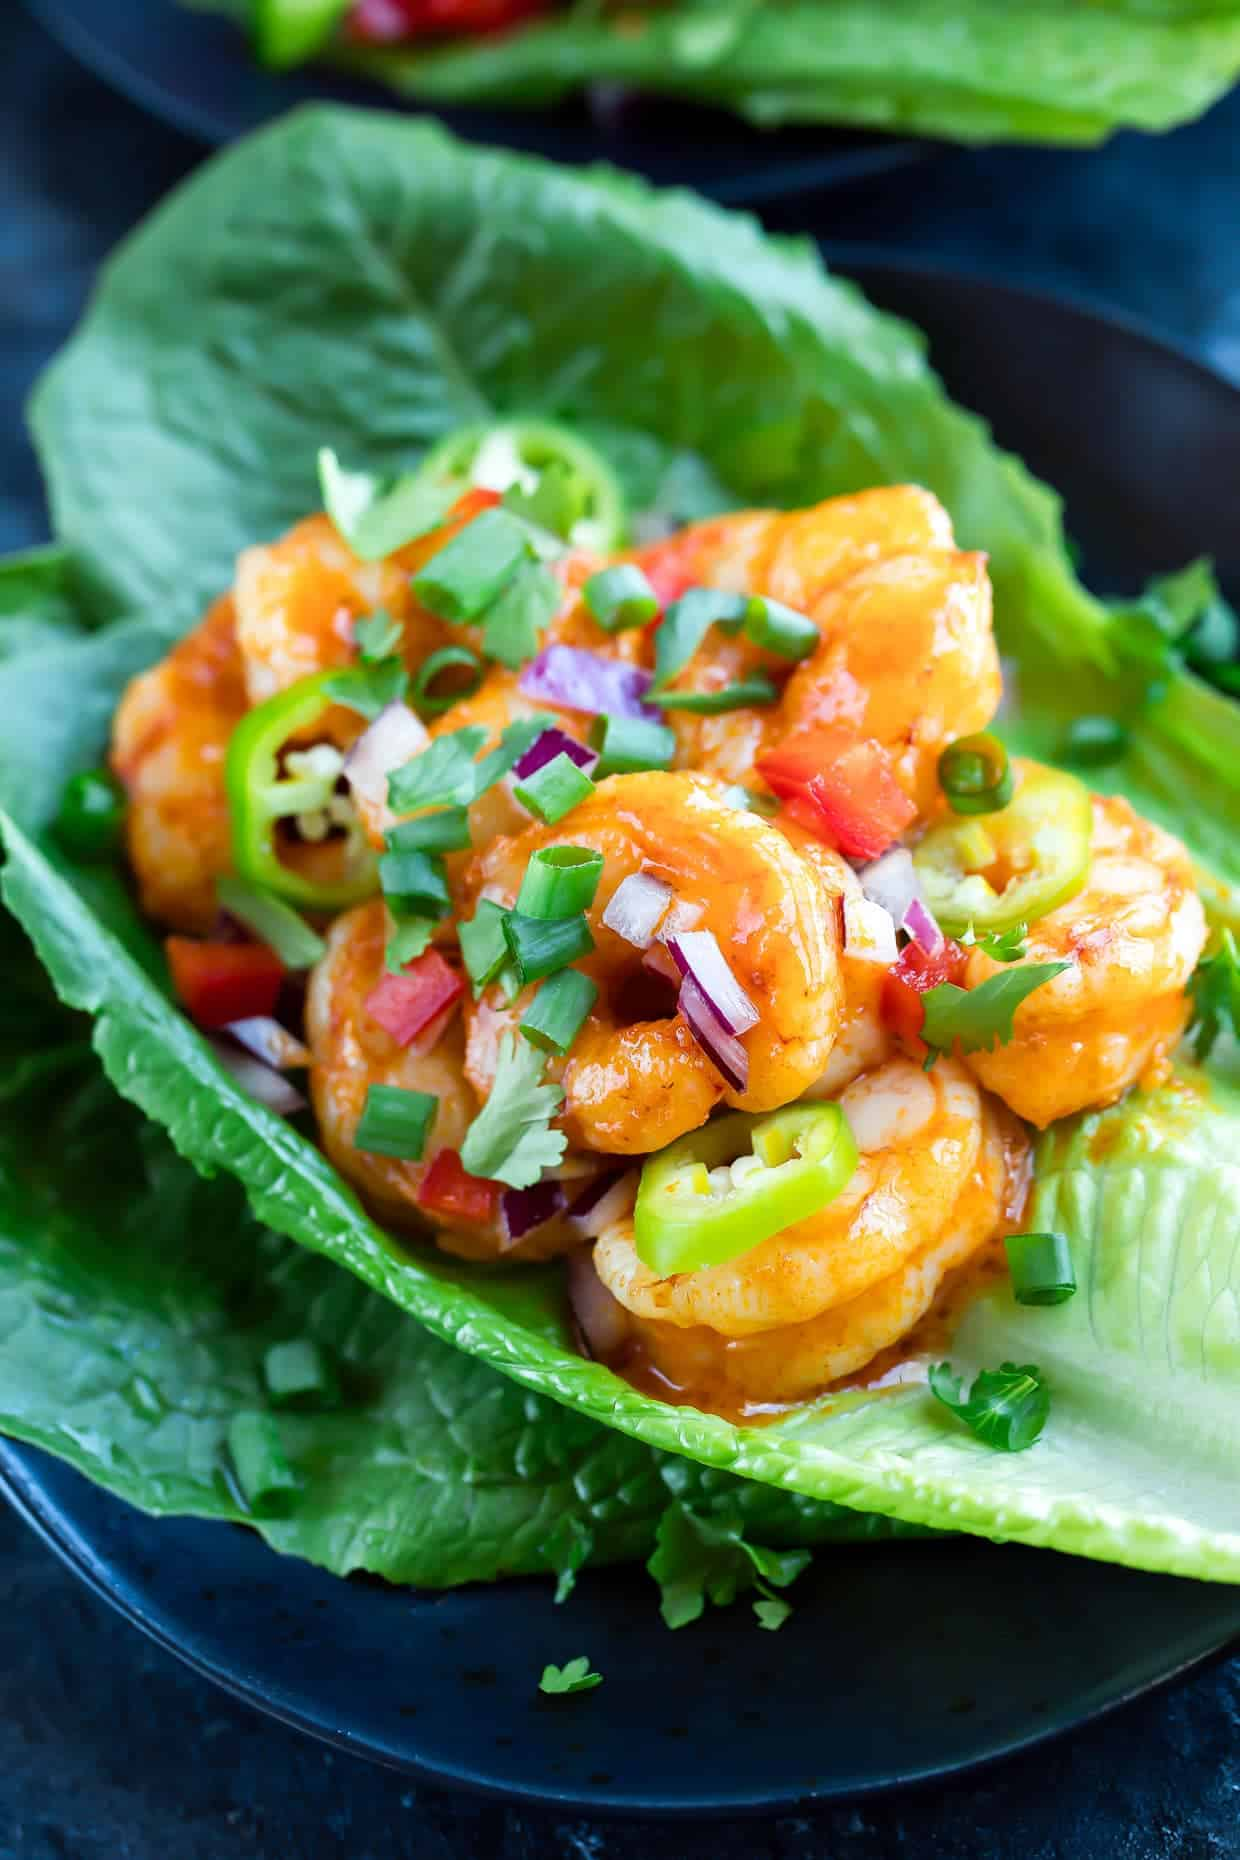 Buffalo Shrimp Lettuce Wraps with diced onion, tomato, and sliced jalapeno served on romaine lettuce